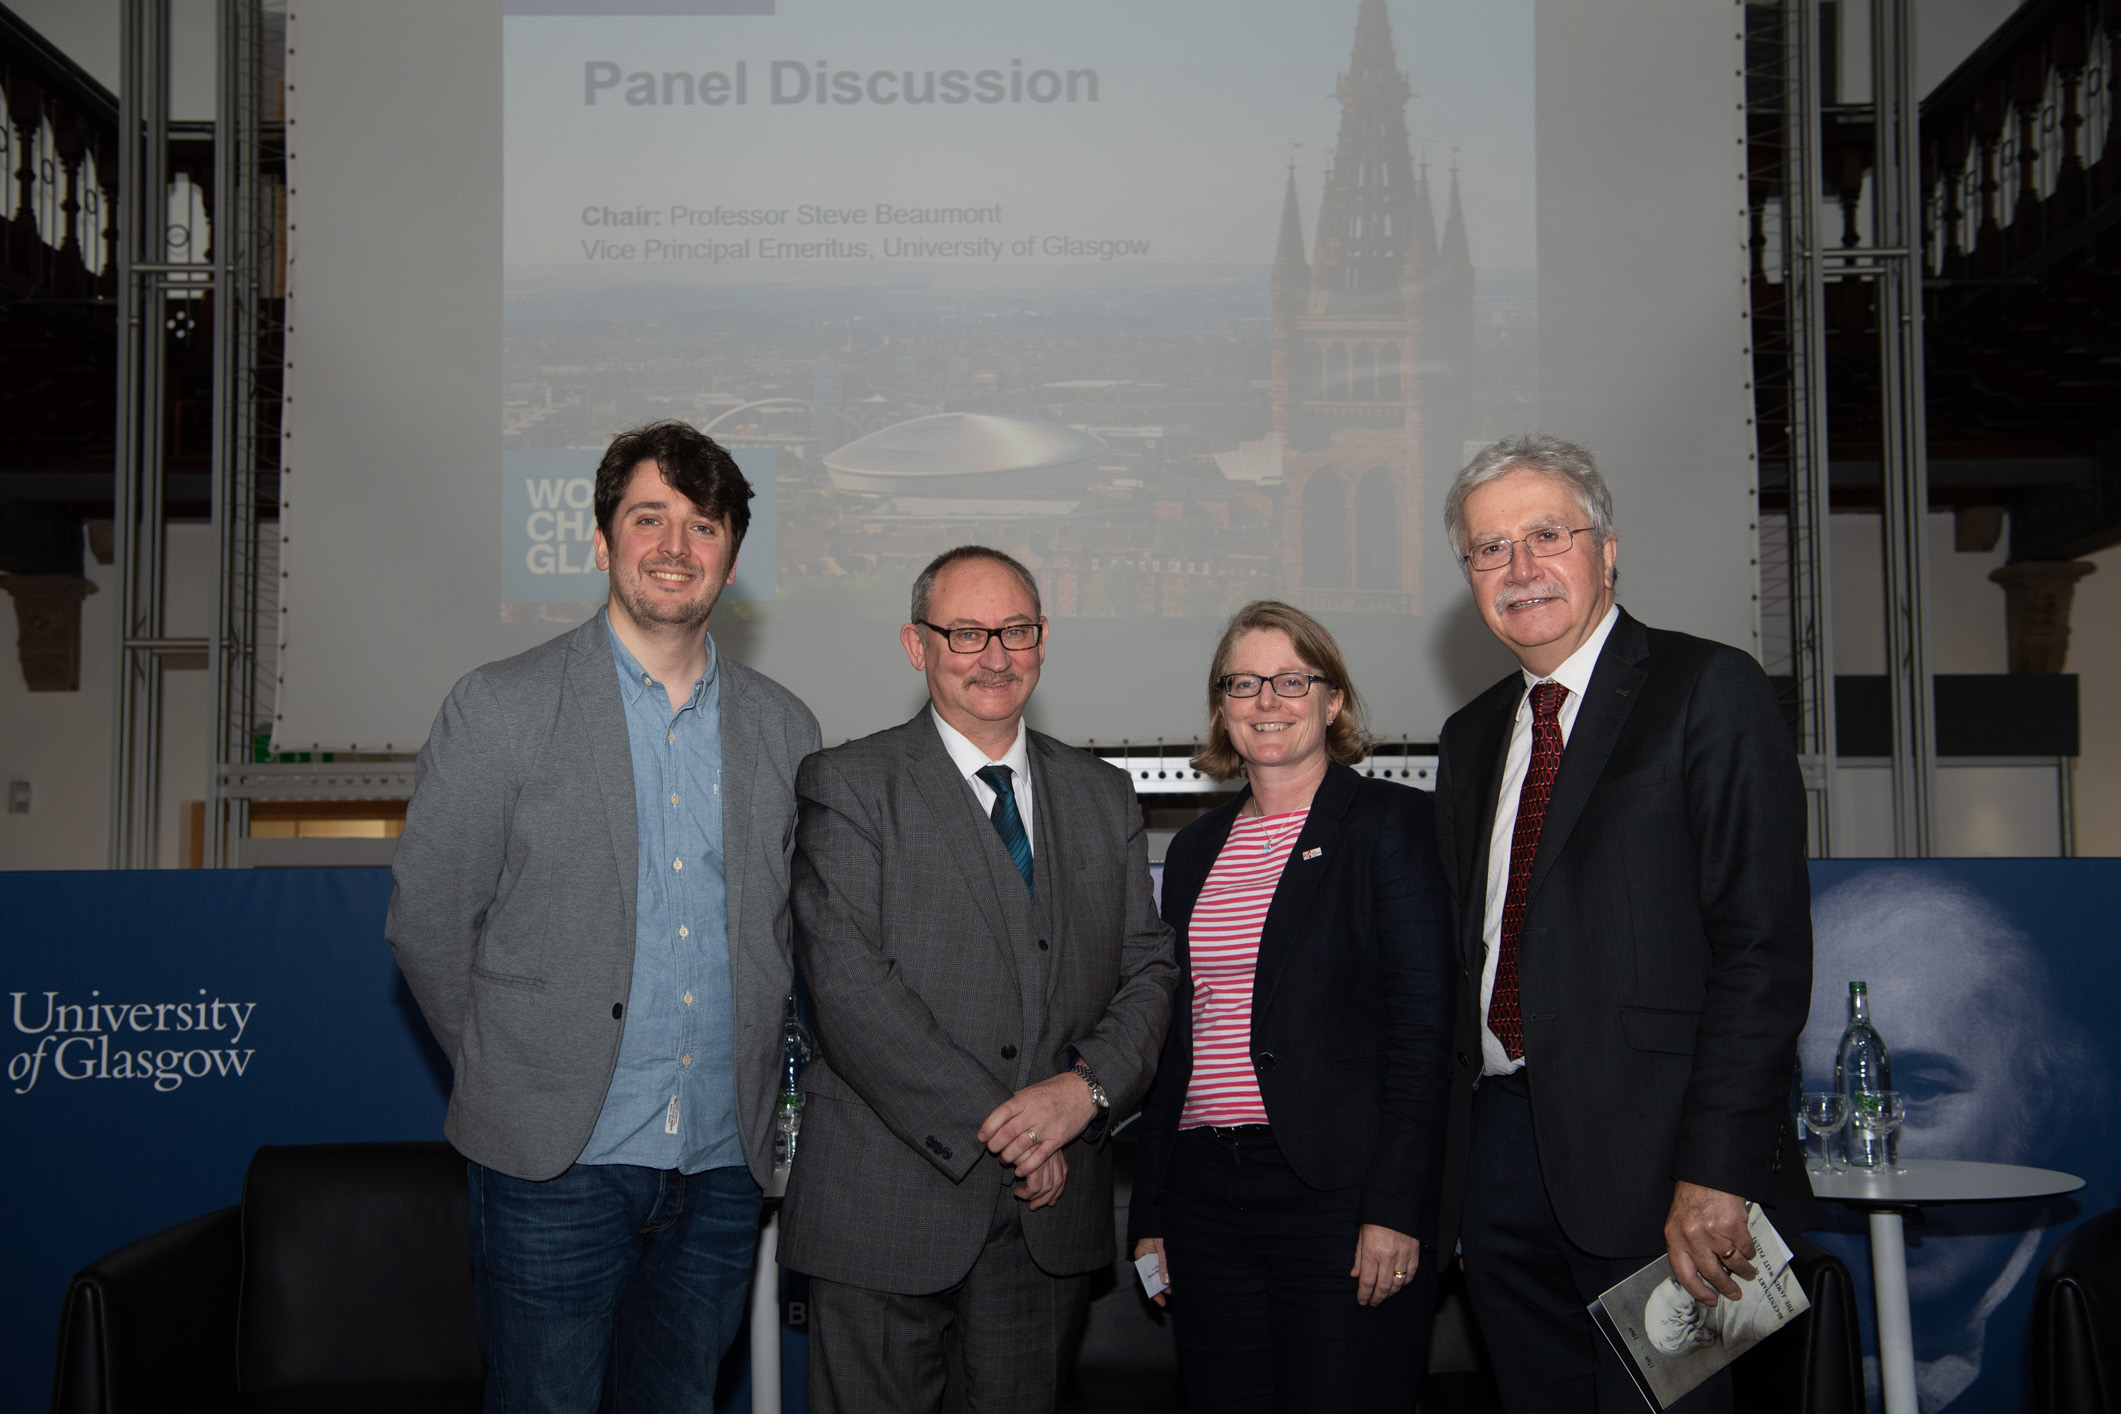 Dr Marin Lavery, Hugh Gill, Catherine Mealing-Jones and Professor Steve Beaumont at the James Watt Symposium.